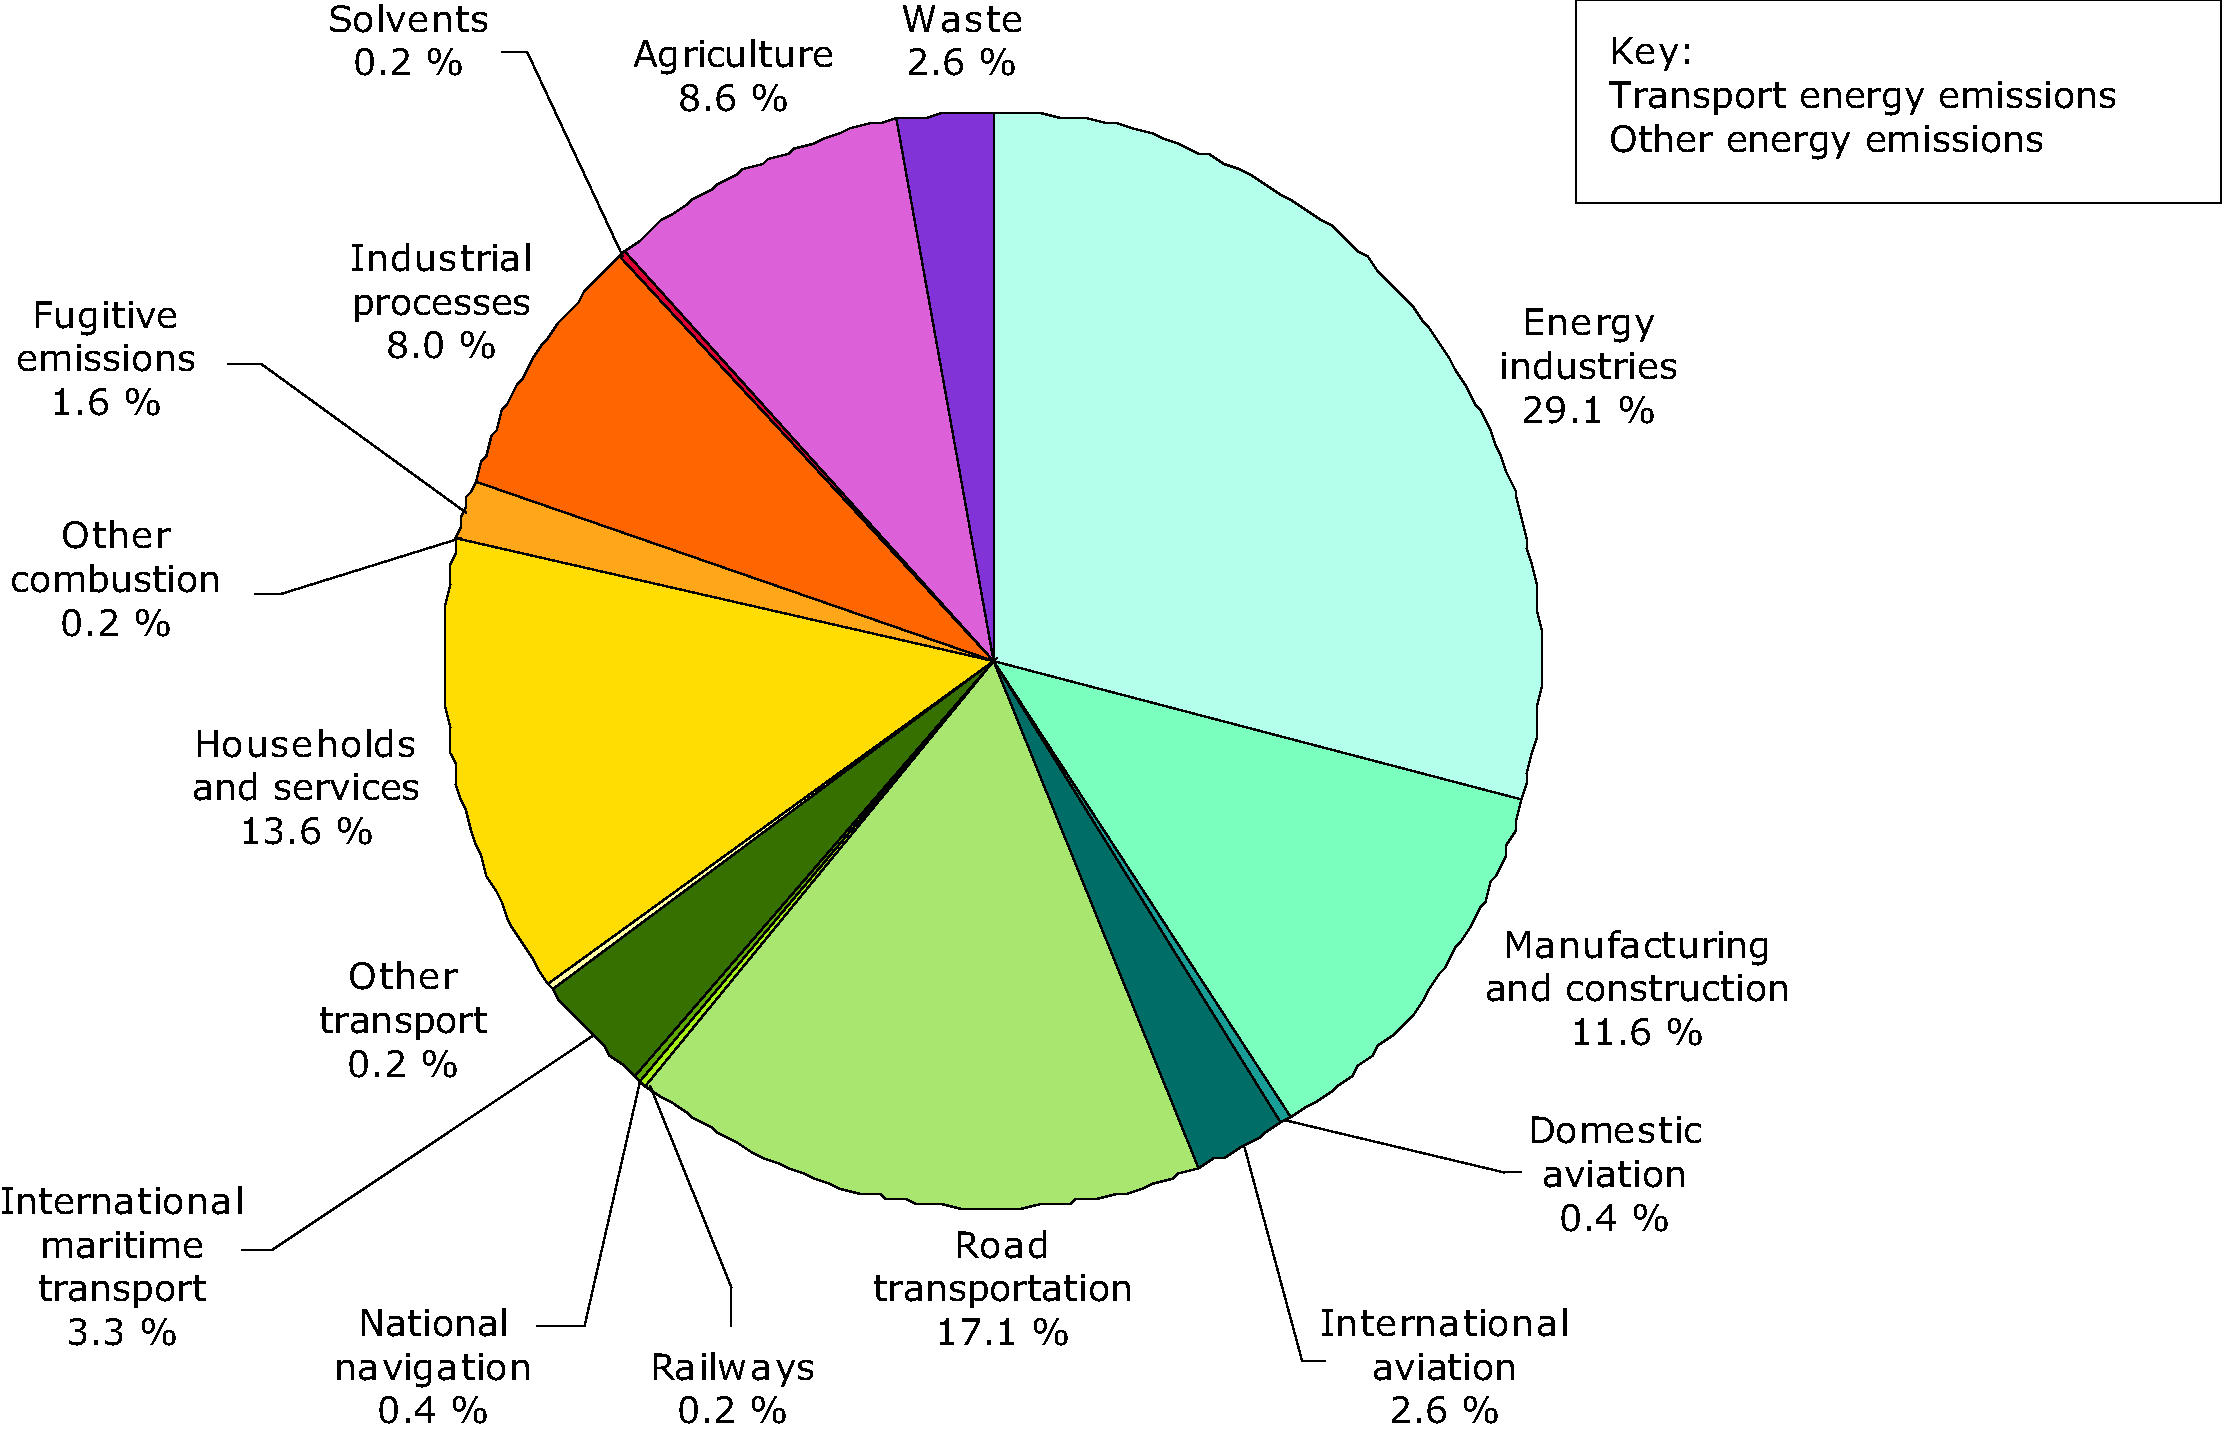 Greenhouse gas emissions (Kyoto gases) by sector (%) in EU-27, 2008